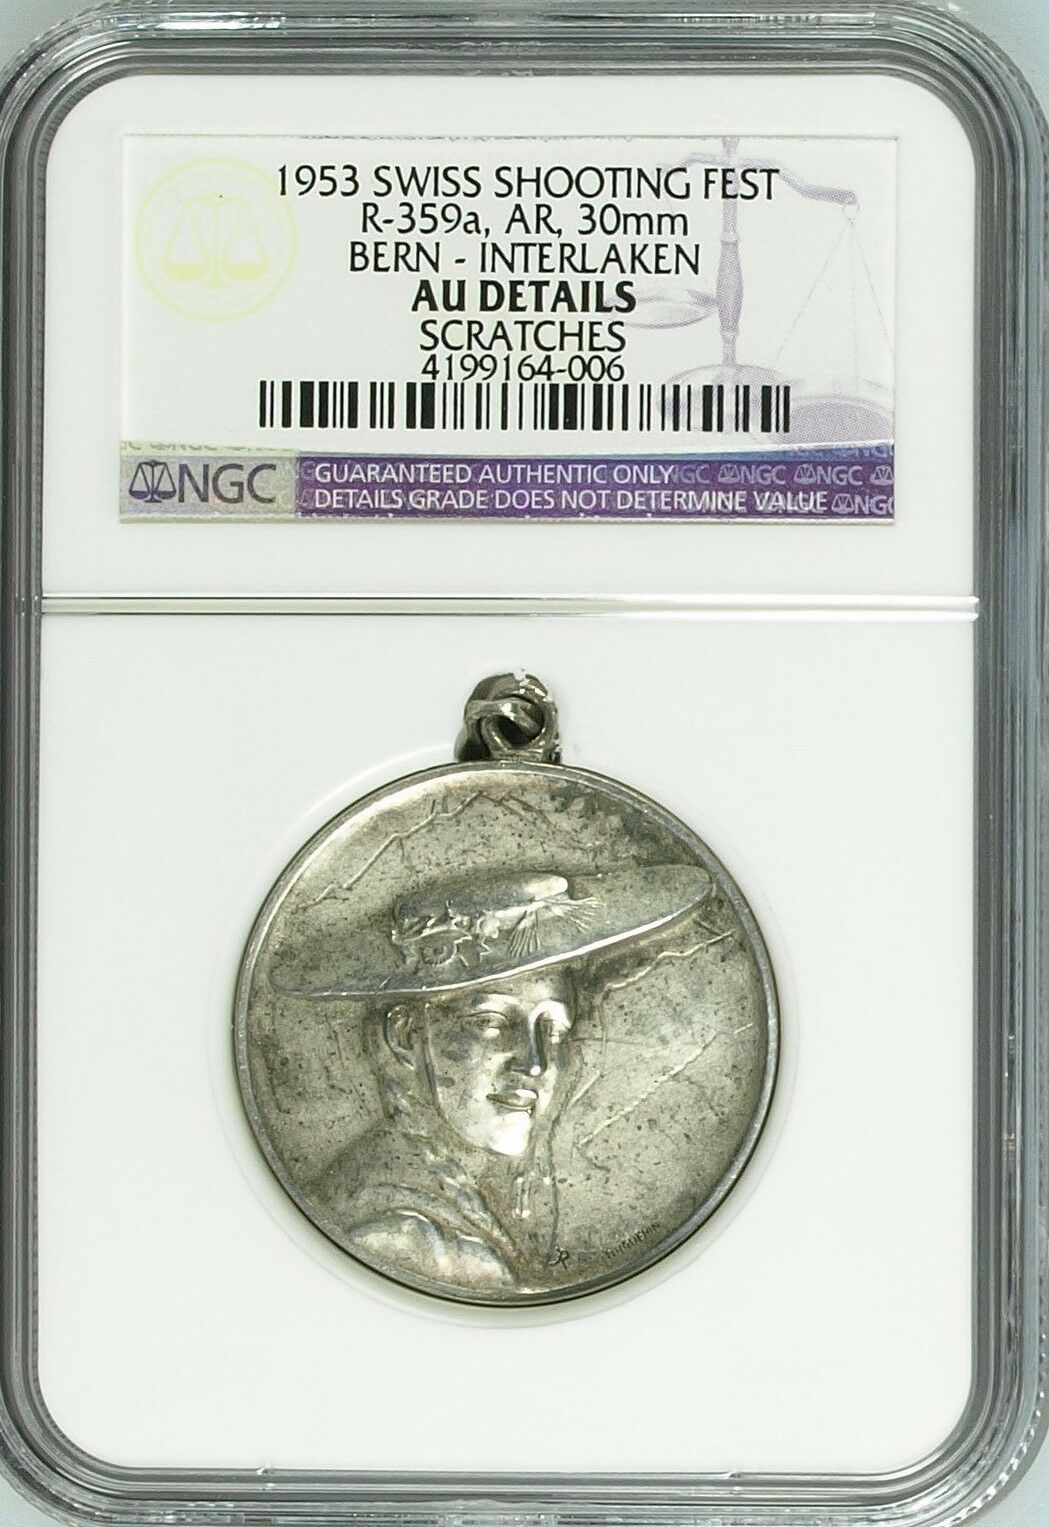 Swiss 1953 Rare Silver Shooting Medal Bern Interlaken R-359a Beautiful Woman NGC